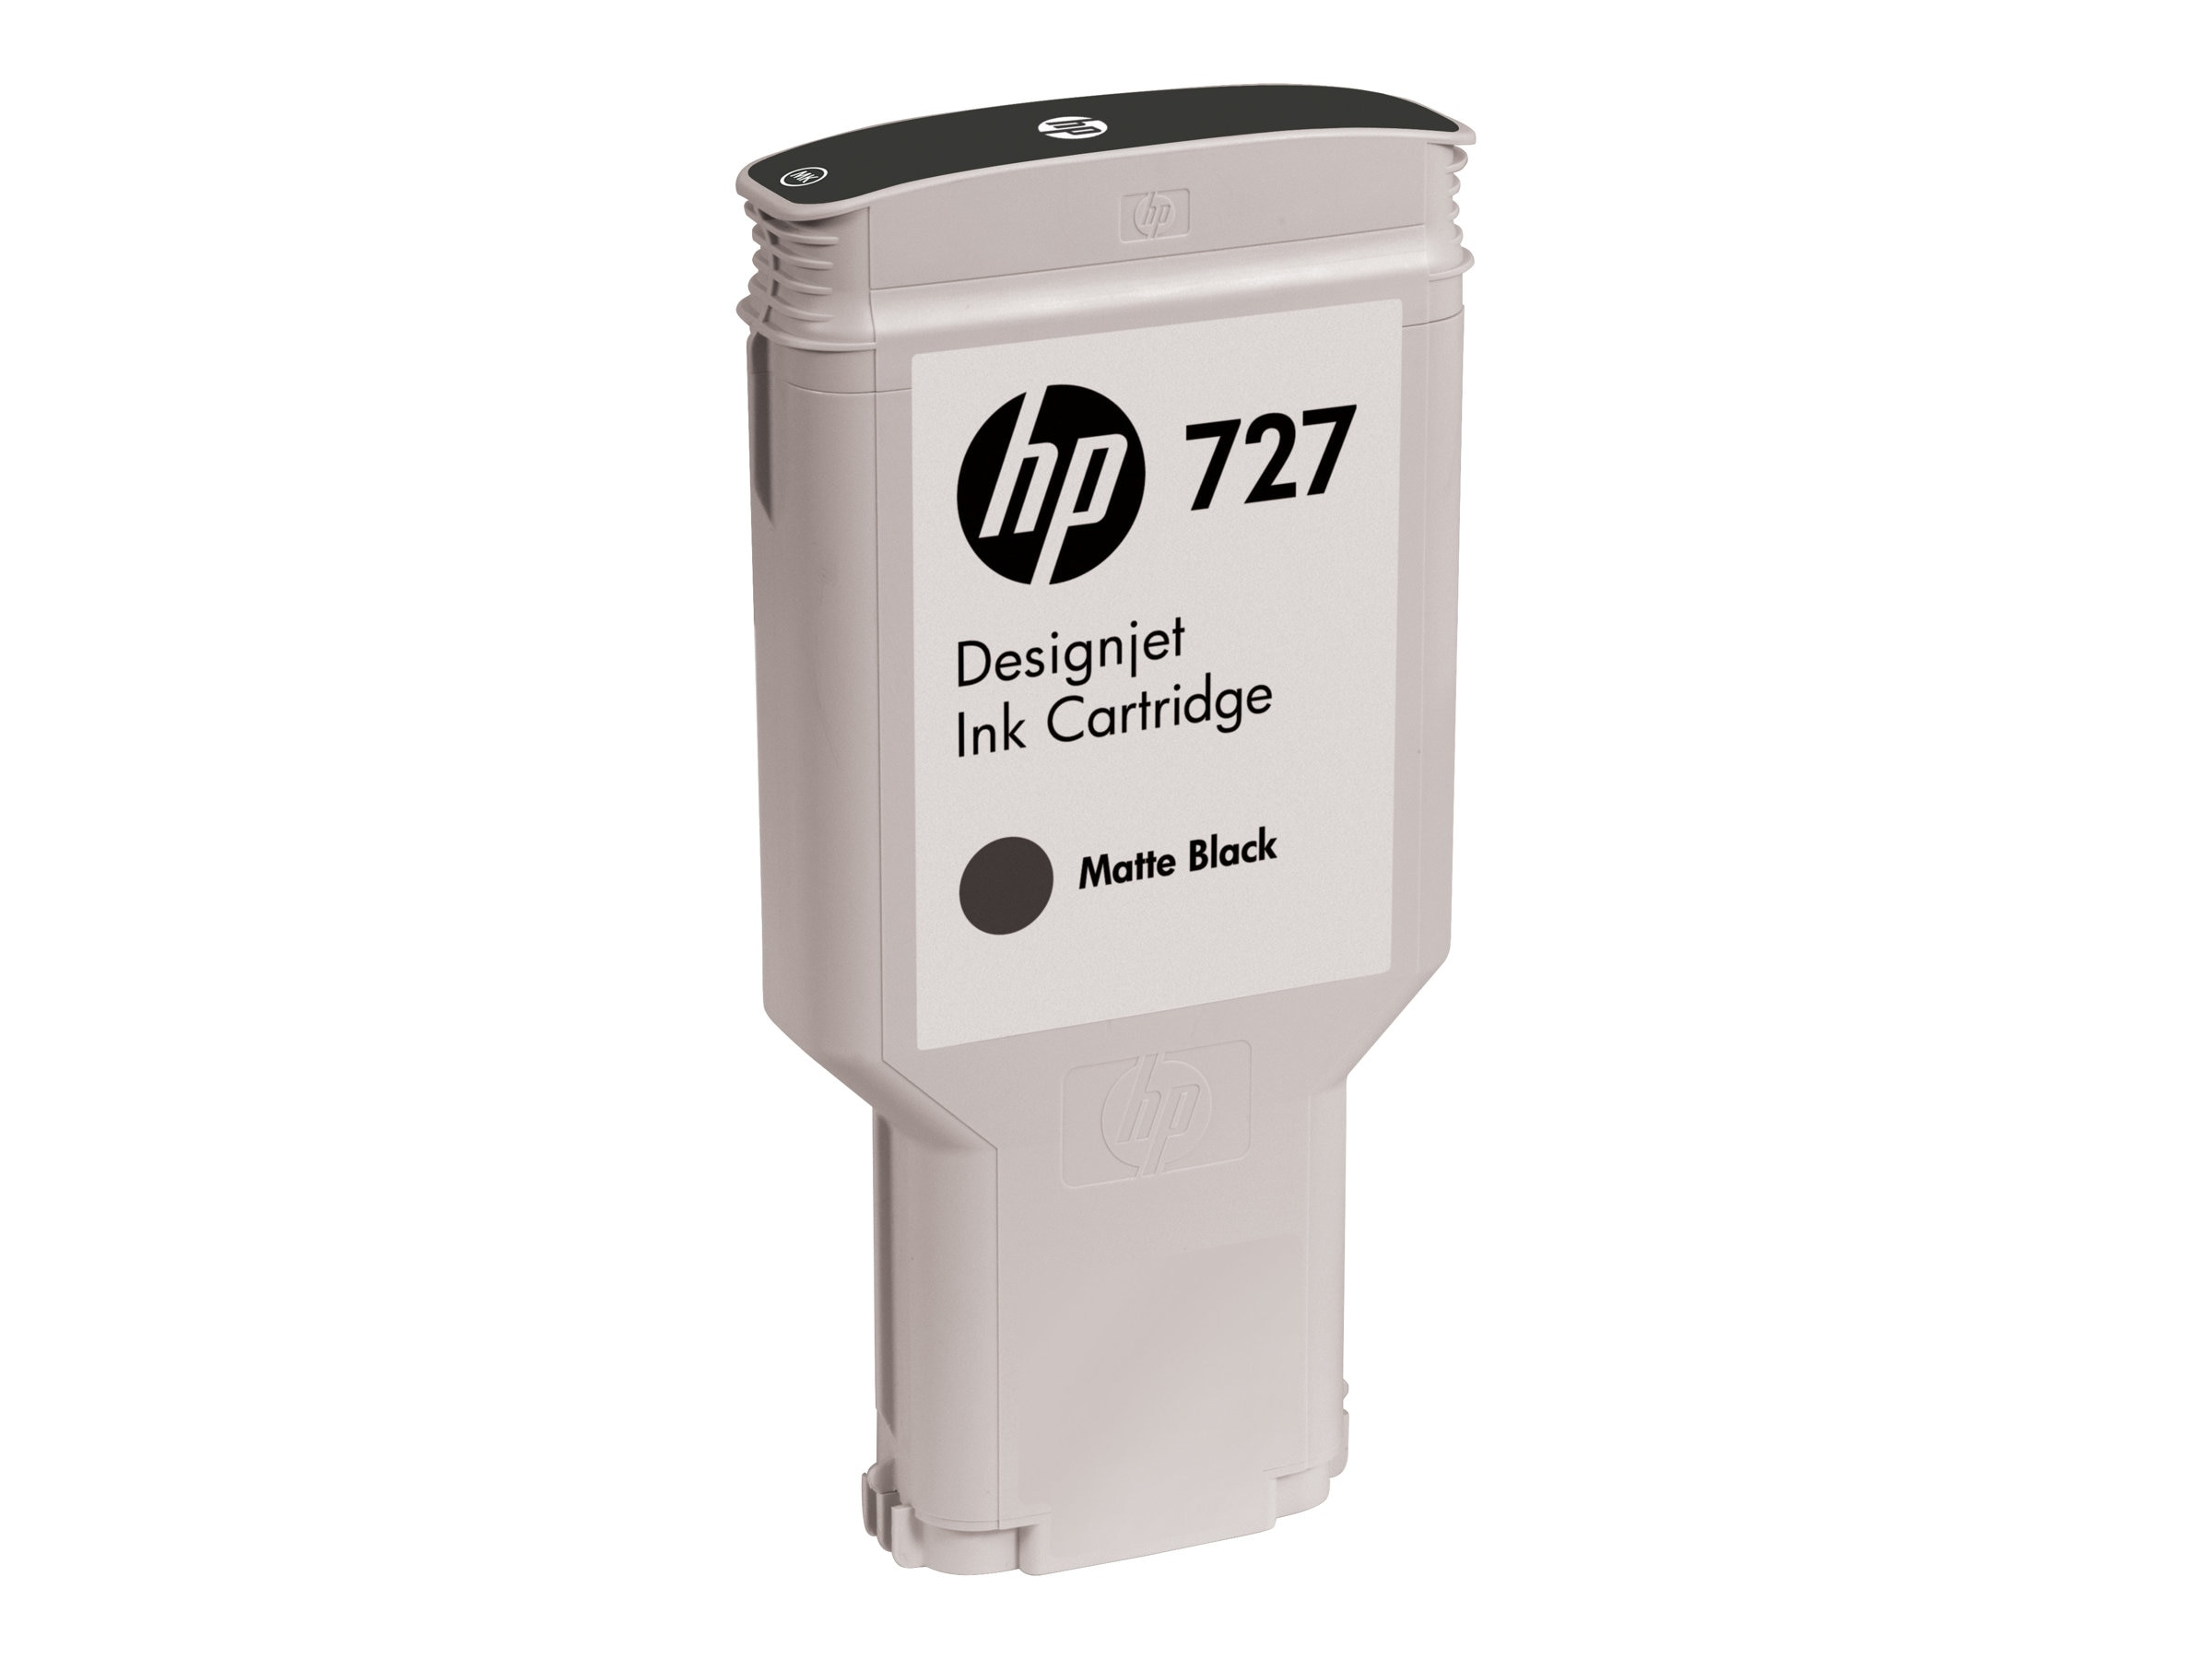 HP Inc. C1Q12A Image 1